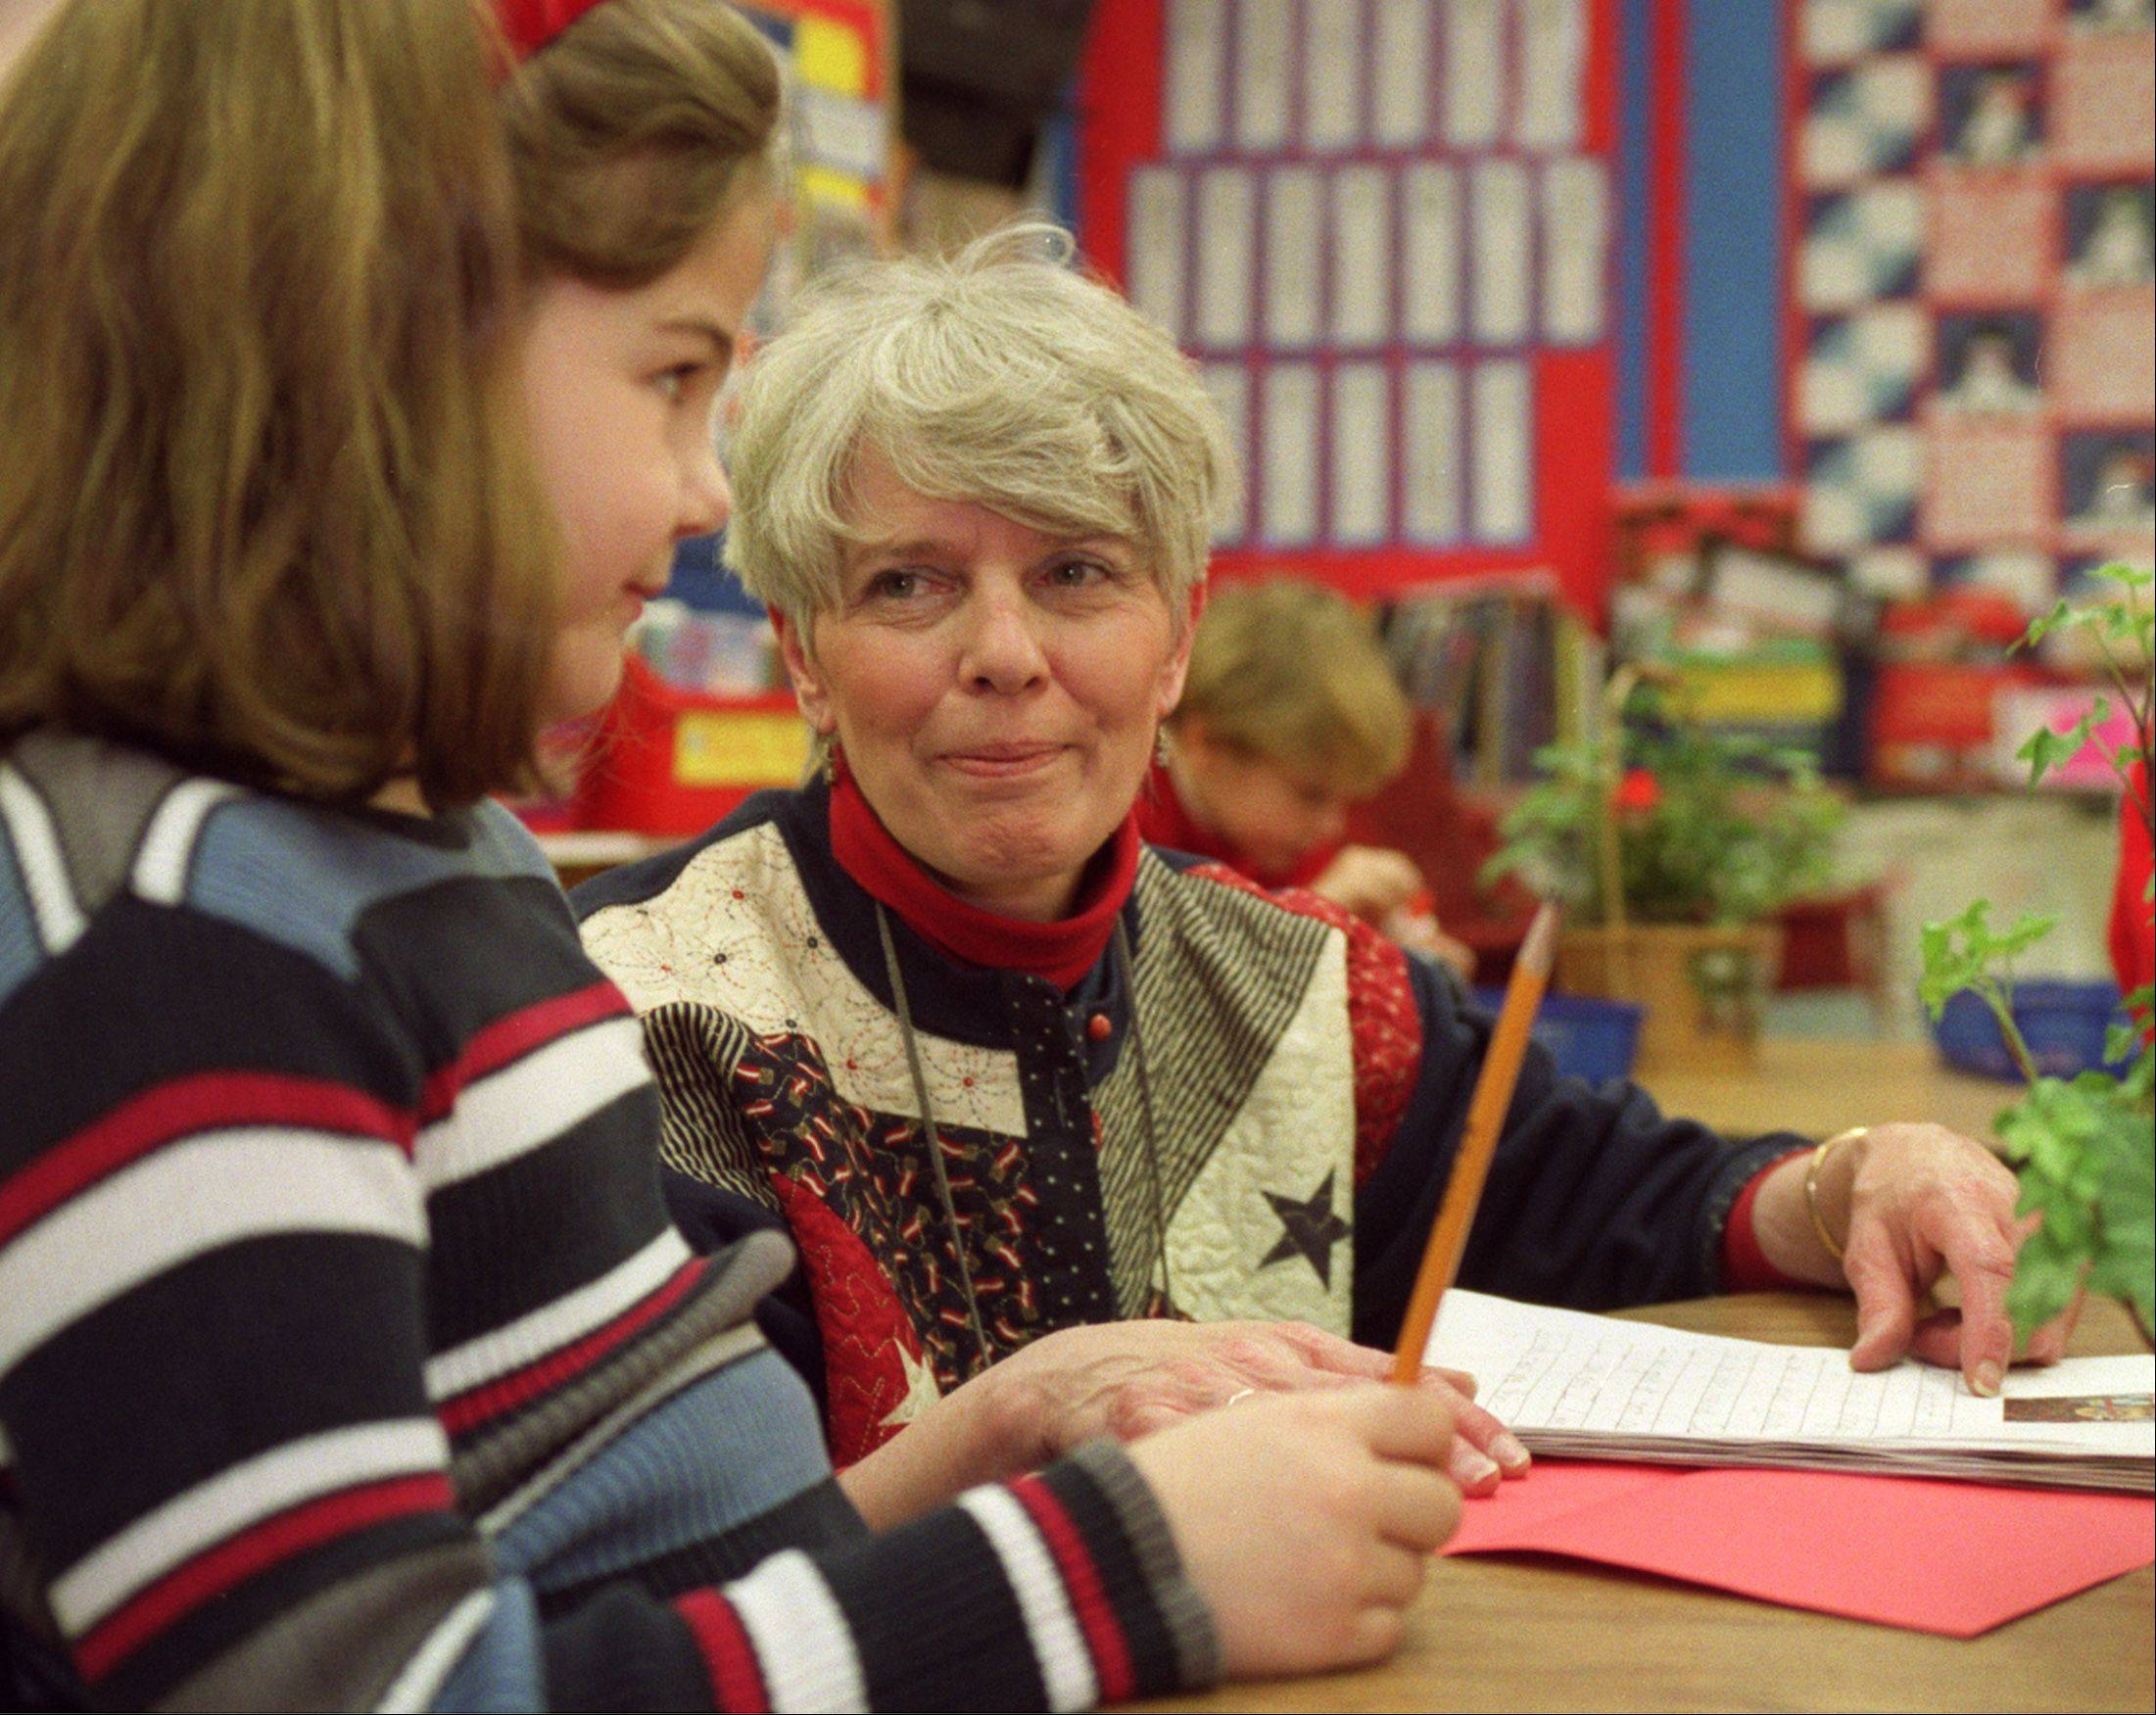 Second-grade teacher Mary Bencini works with student Angie Crowe on Crowe's Valentine's Day letter in 2006 at Western Avenue Elementary School in Geneva.